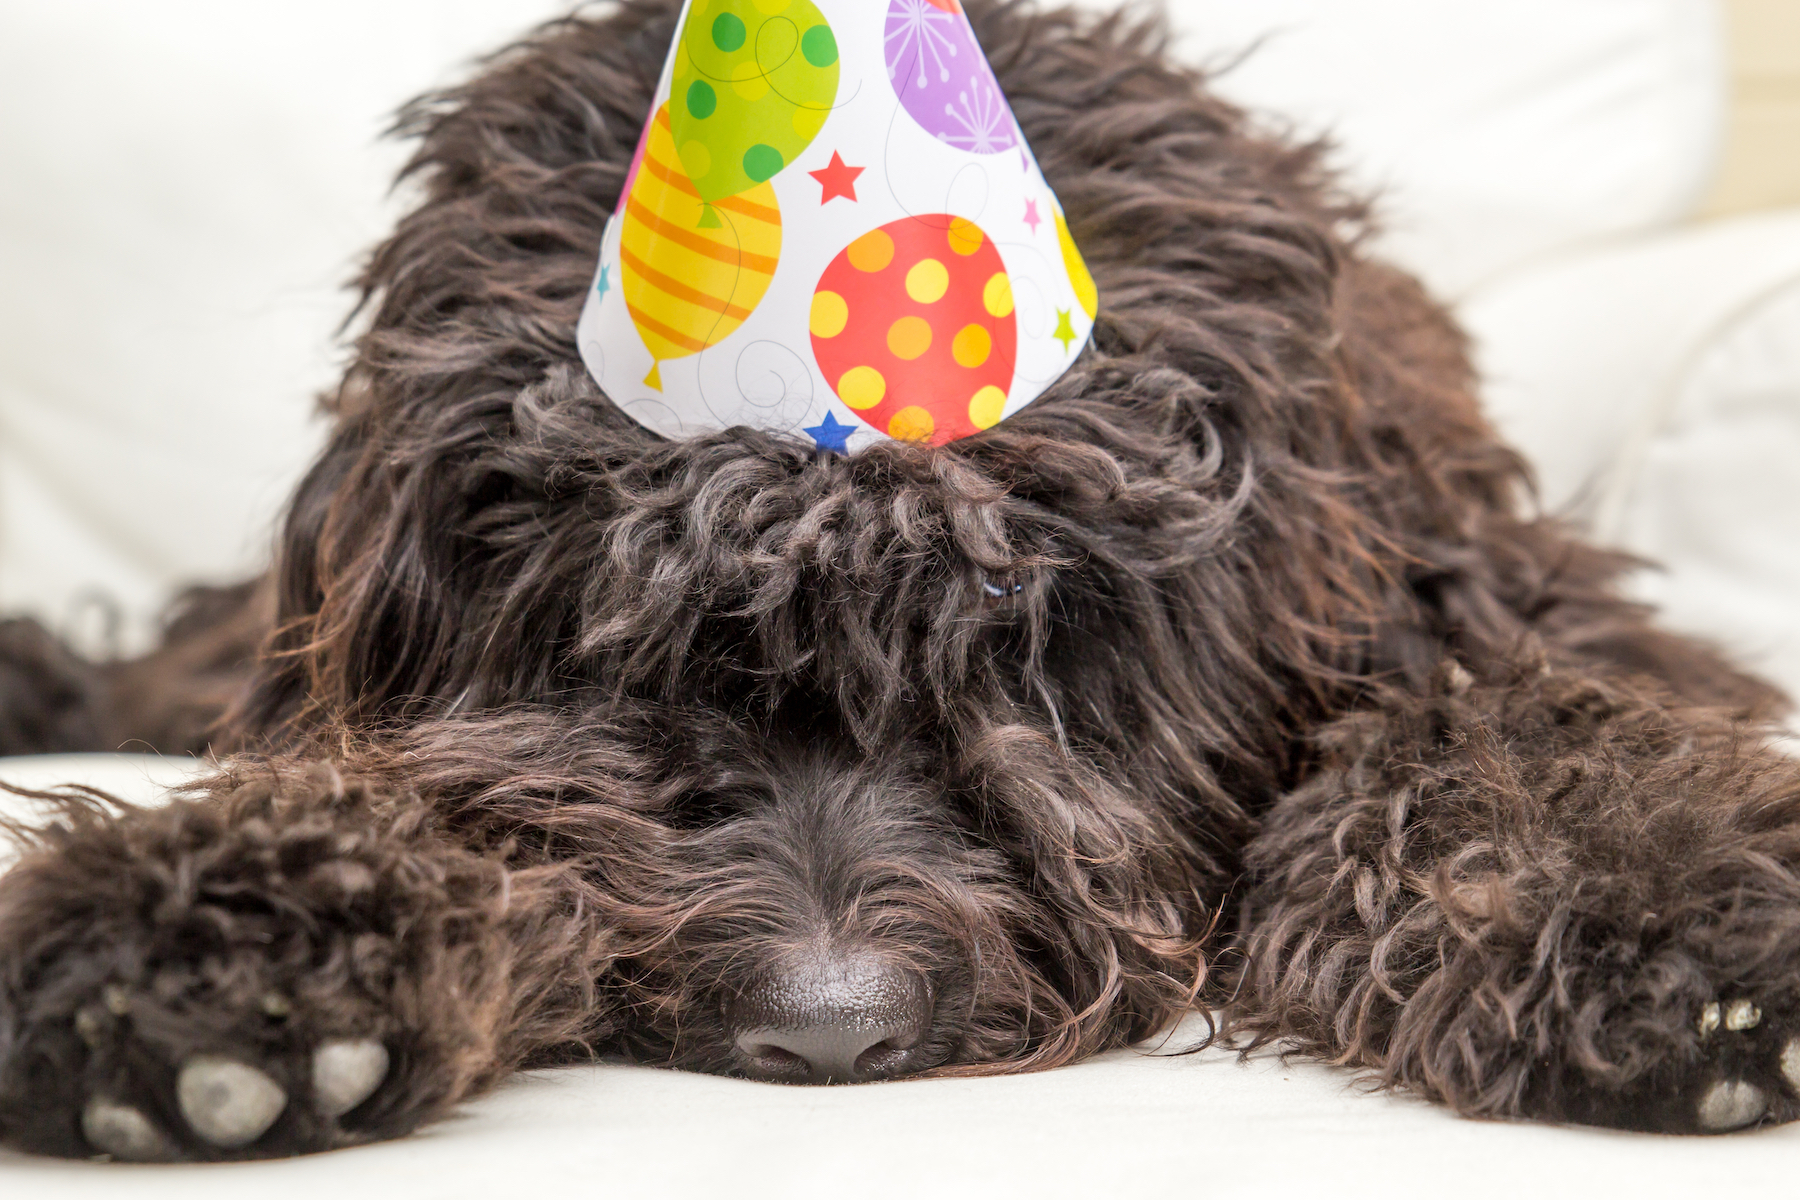 Canva - Black shaggy dog wearing a party hat